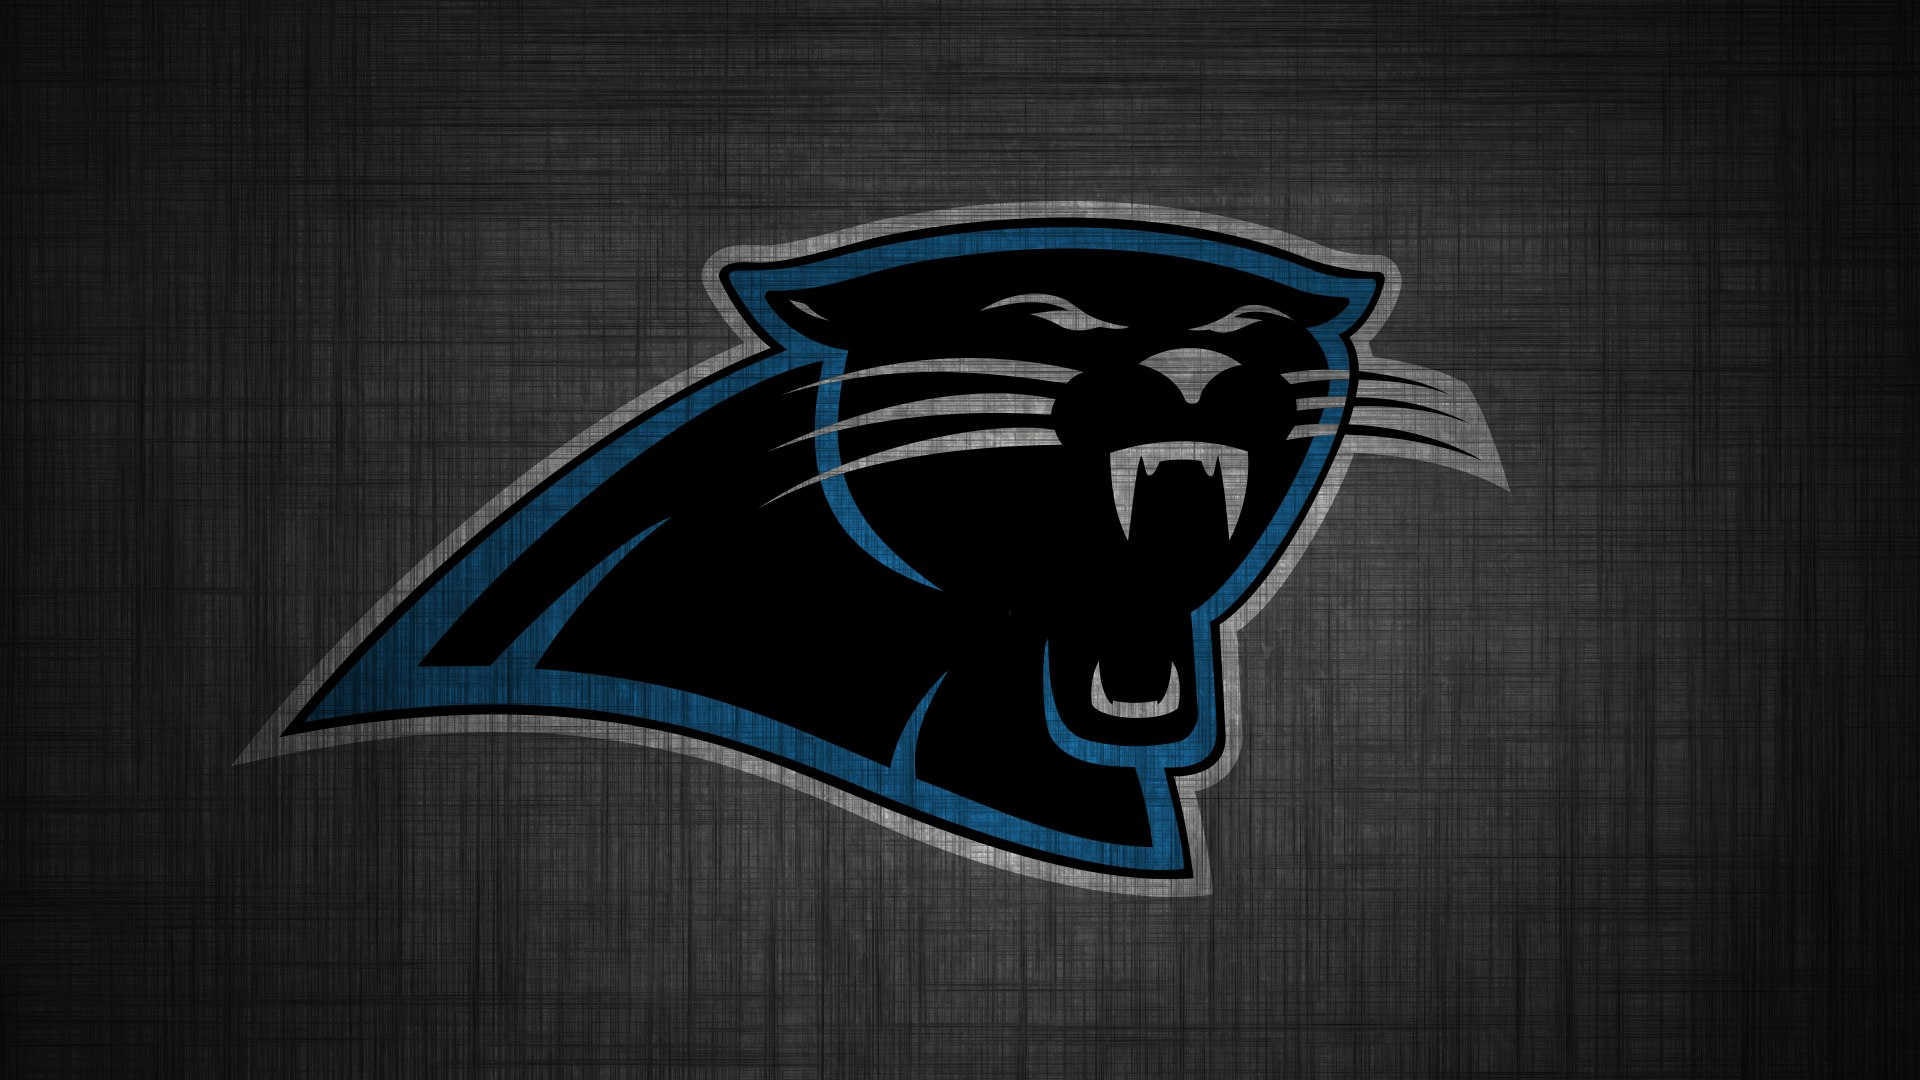 Panthers wallpaper 14569 1680x1050 px hdwallsource carolina panthers desktop wallpaper 49272 voltagebd Image collections